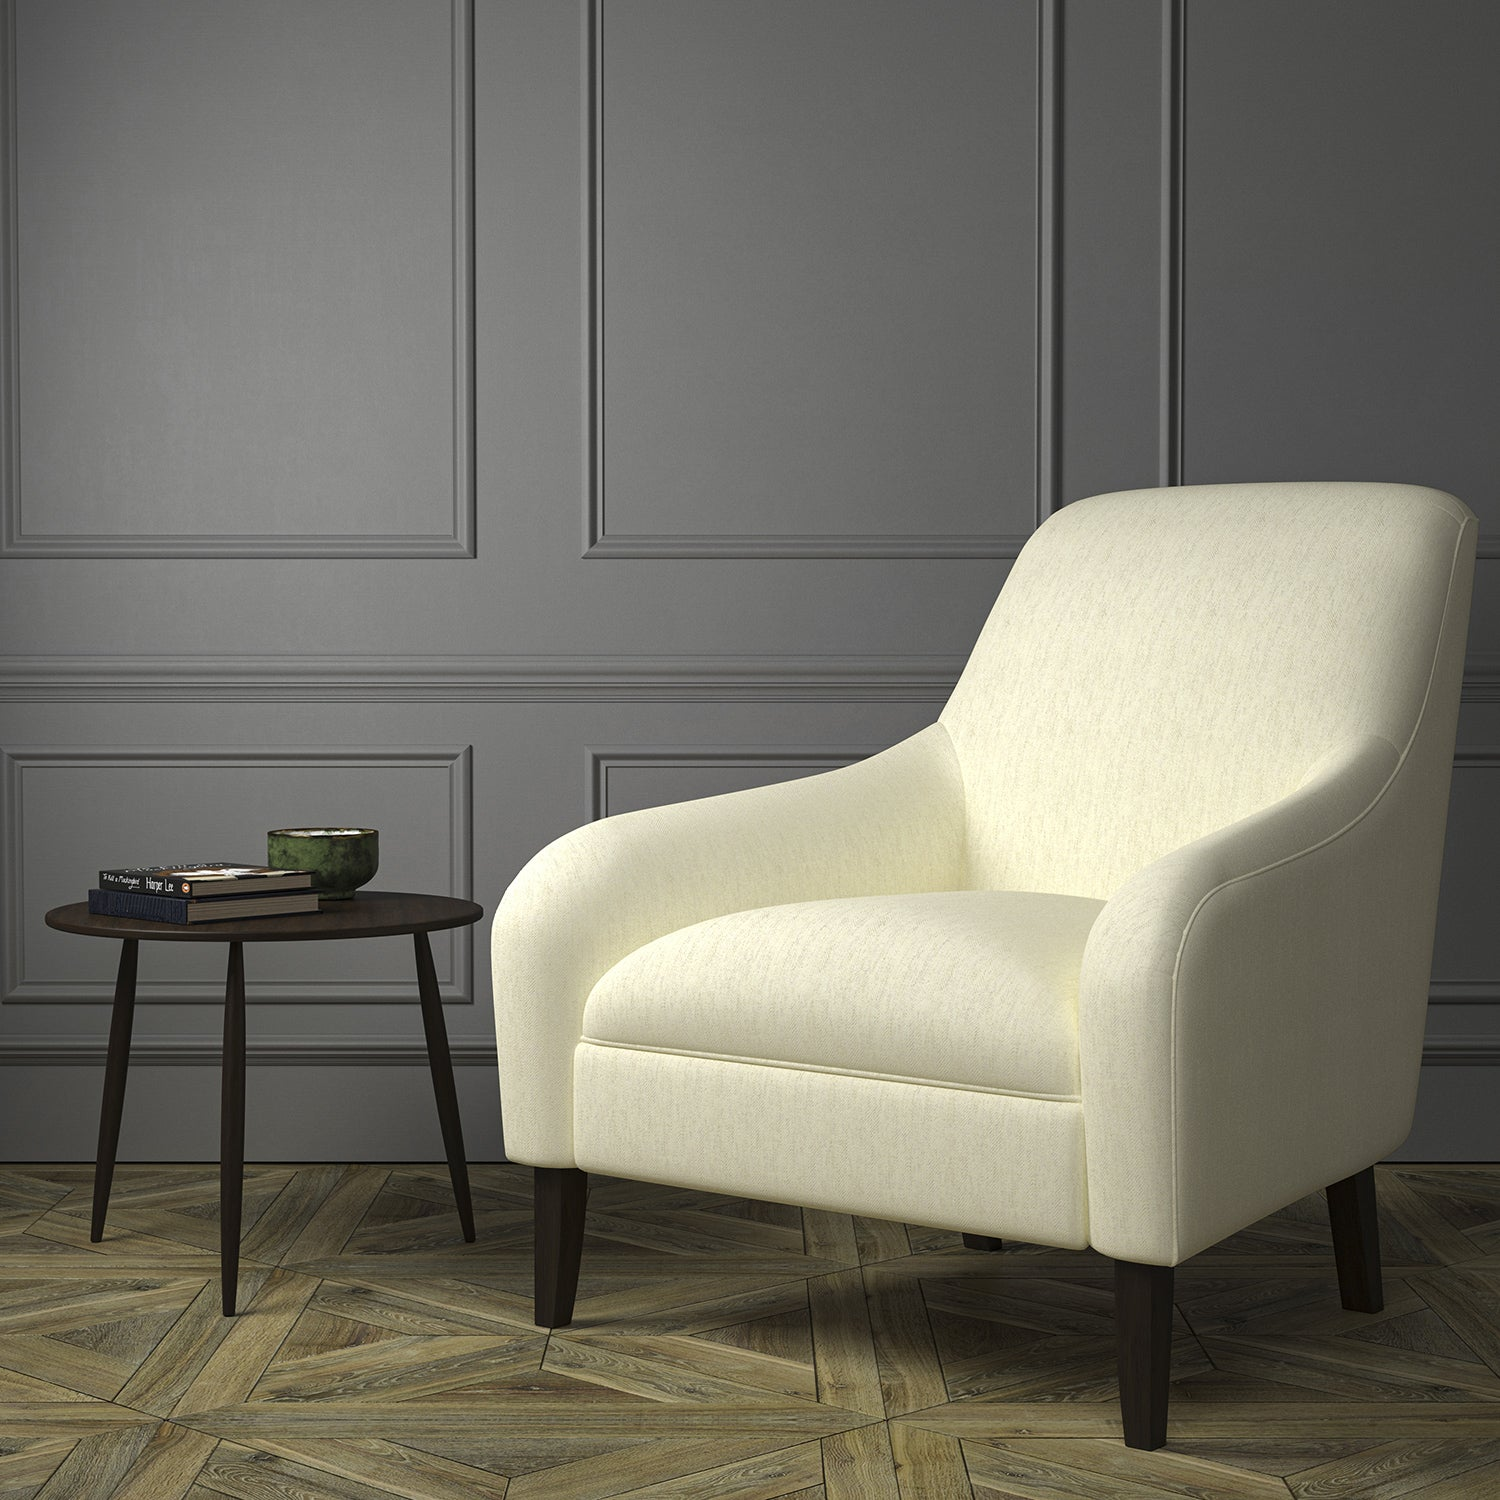 Chair upholstered in a luxury Scottish cream wool herringbone upholstery fabric